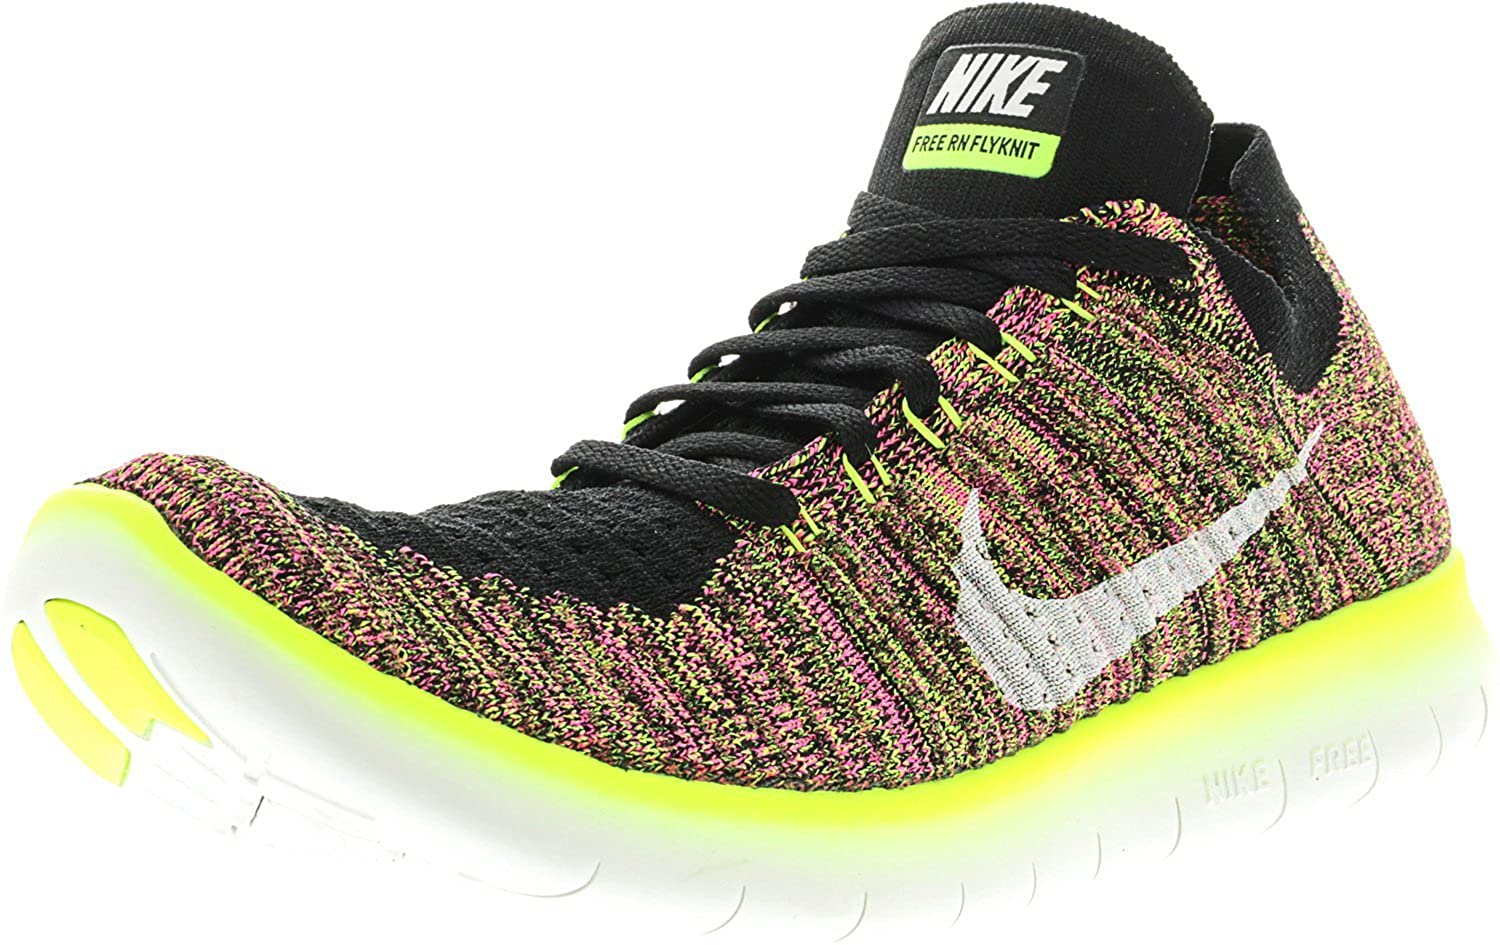 04881af16c381 Nike Men s s Free Rn Flyknit Oc Running Shoes  Amazon.co.uk  Shoes   Bags